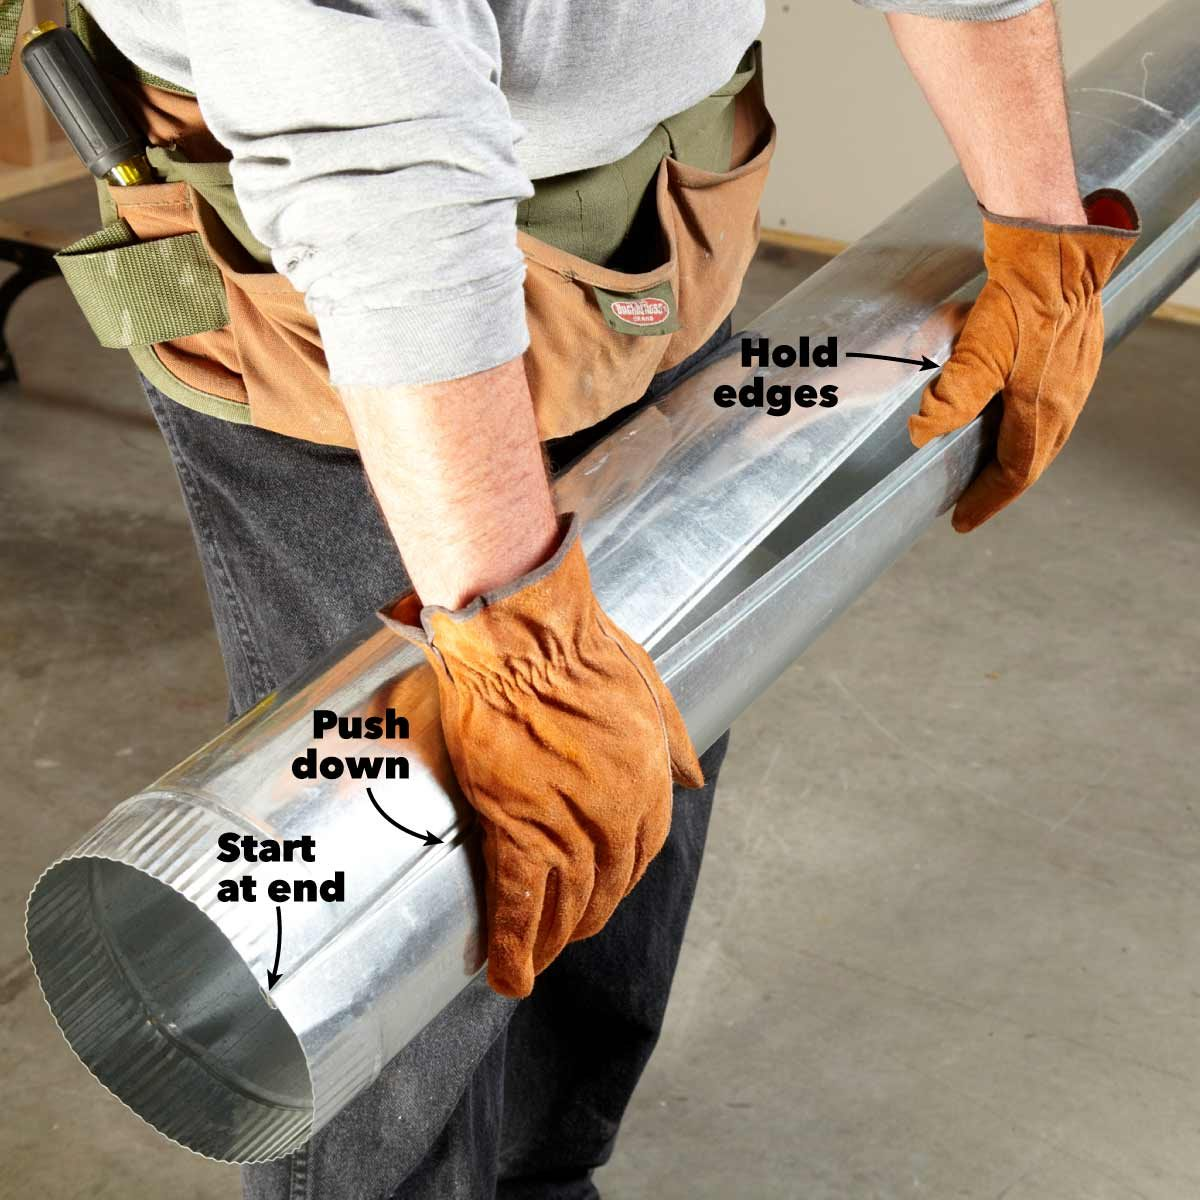 round ductwork installation assemble like a zipper